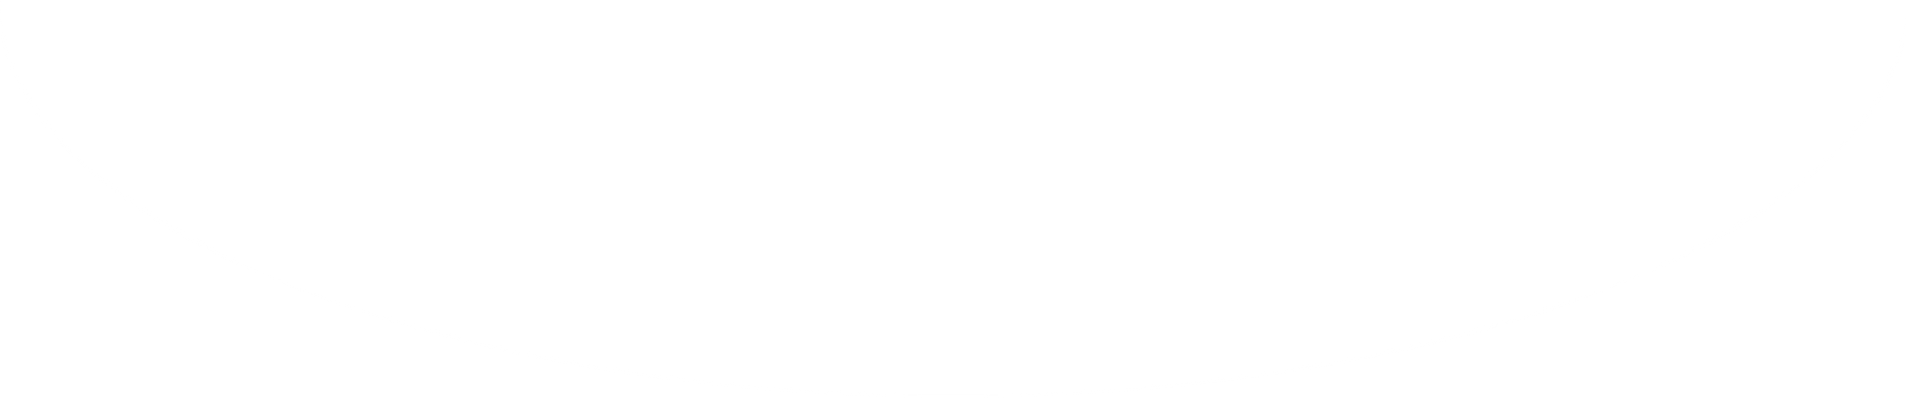 Home-Page-White-Semi-Circle.png